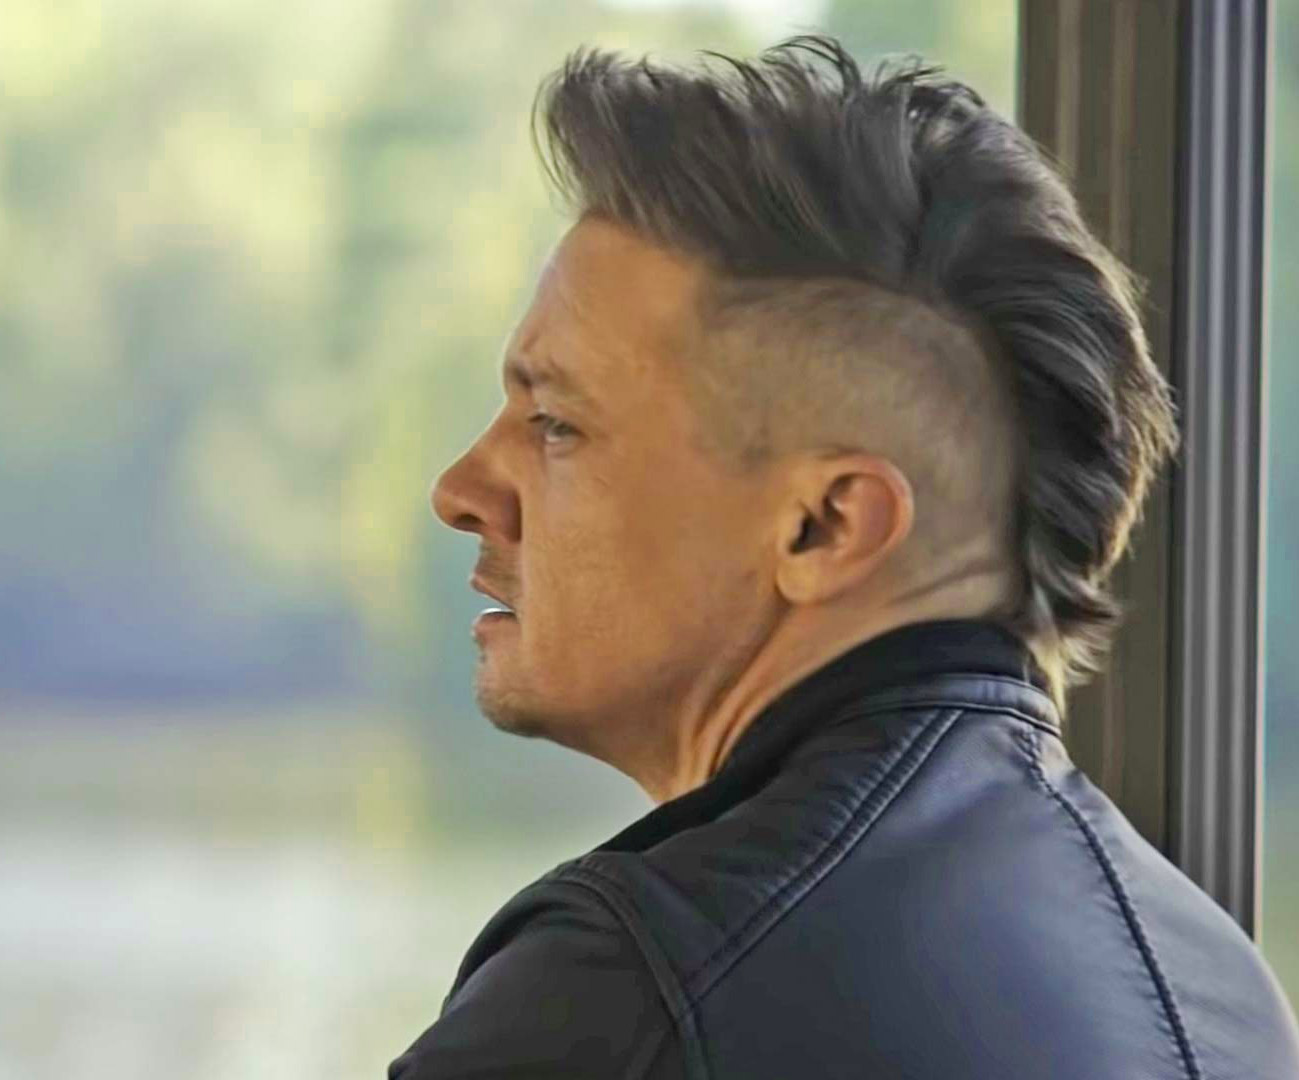 BOYS HAIR STYLISH DESIGN IMAGES PICTURES WALLPAPER